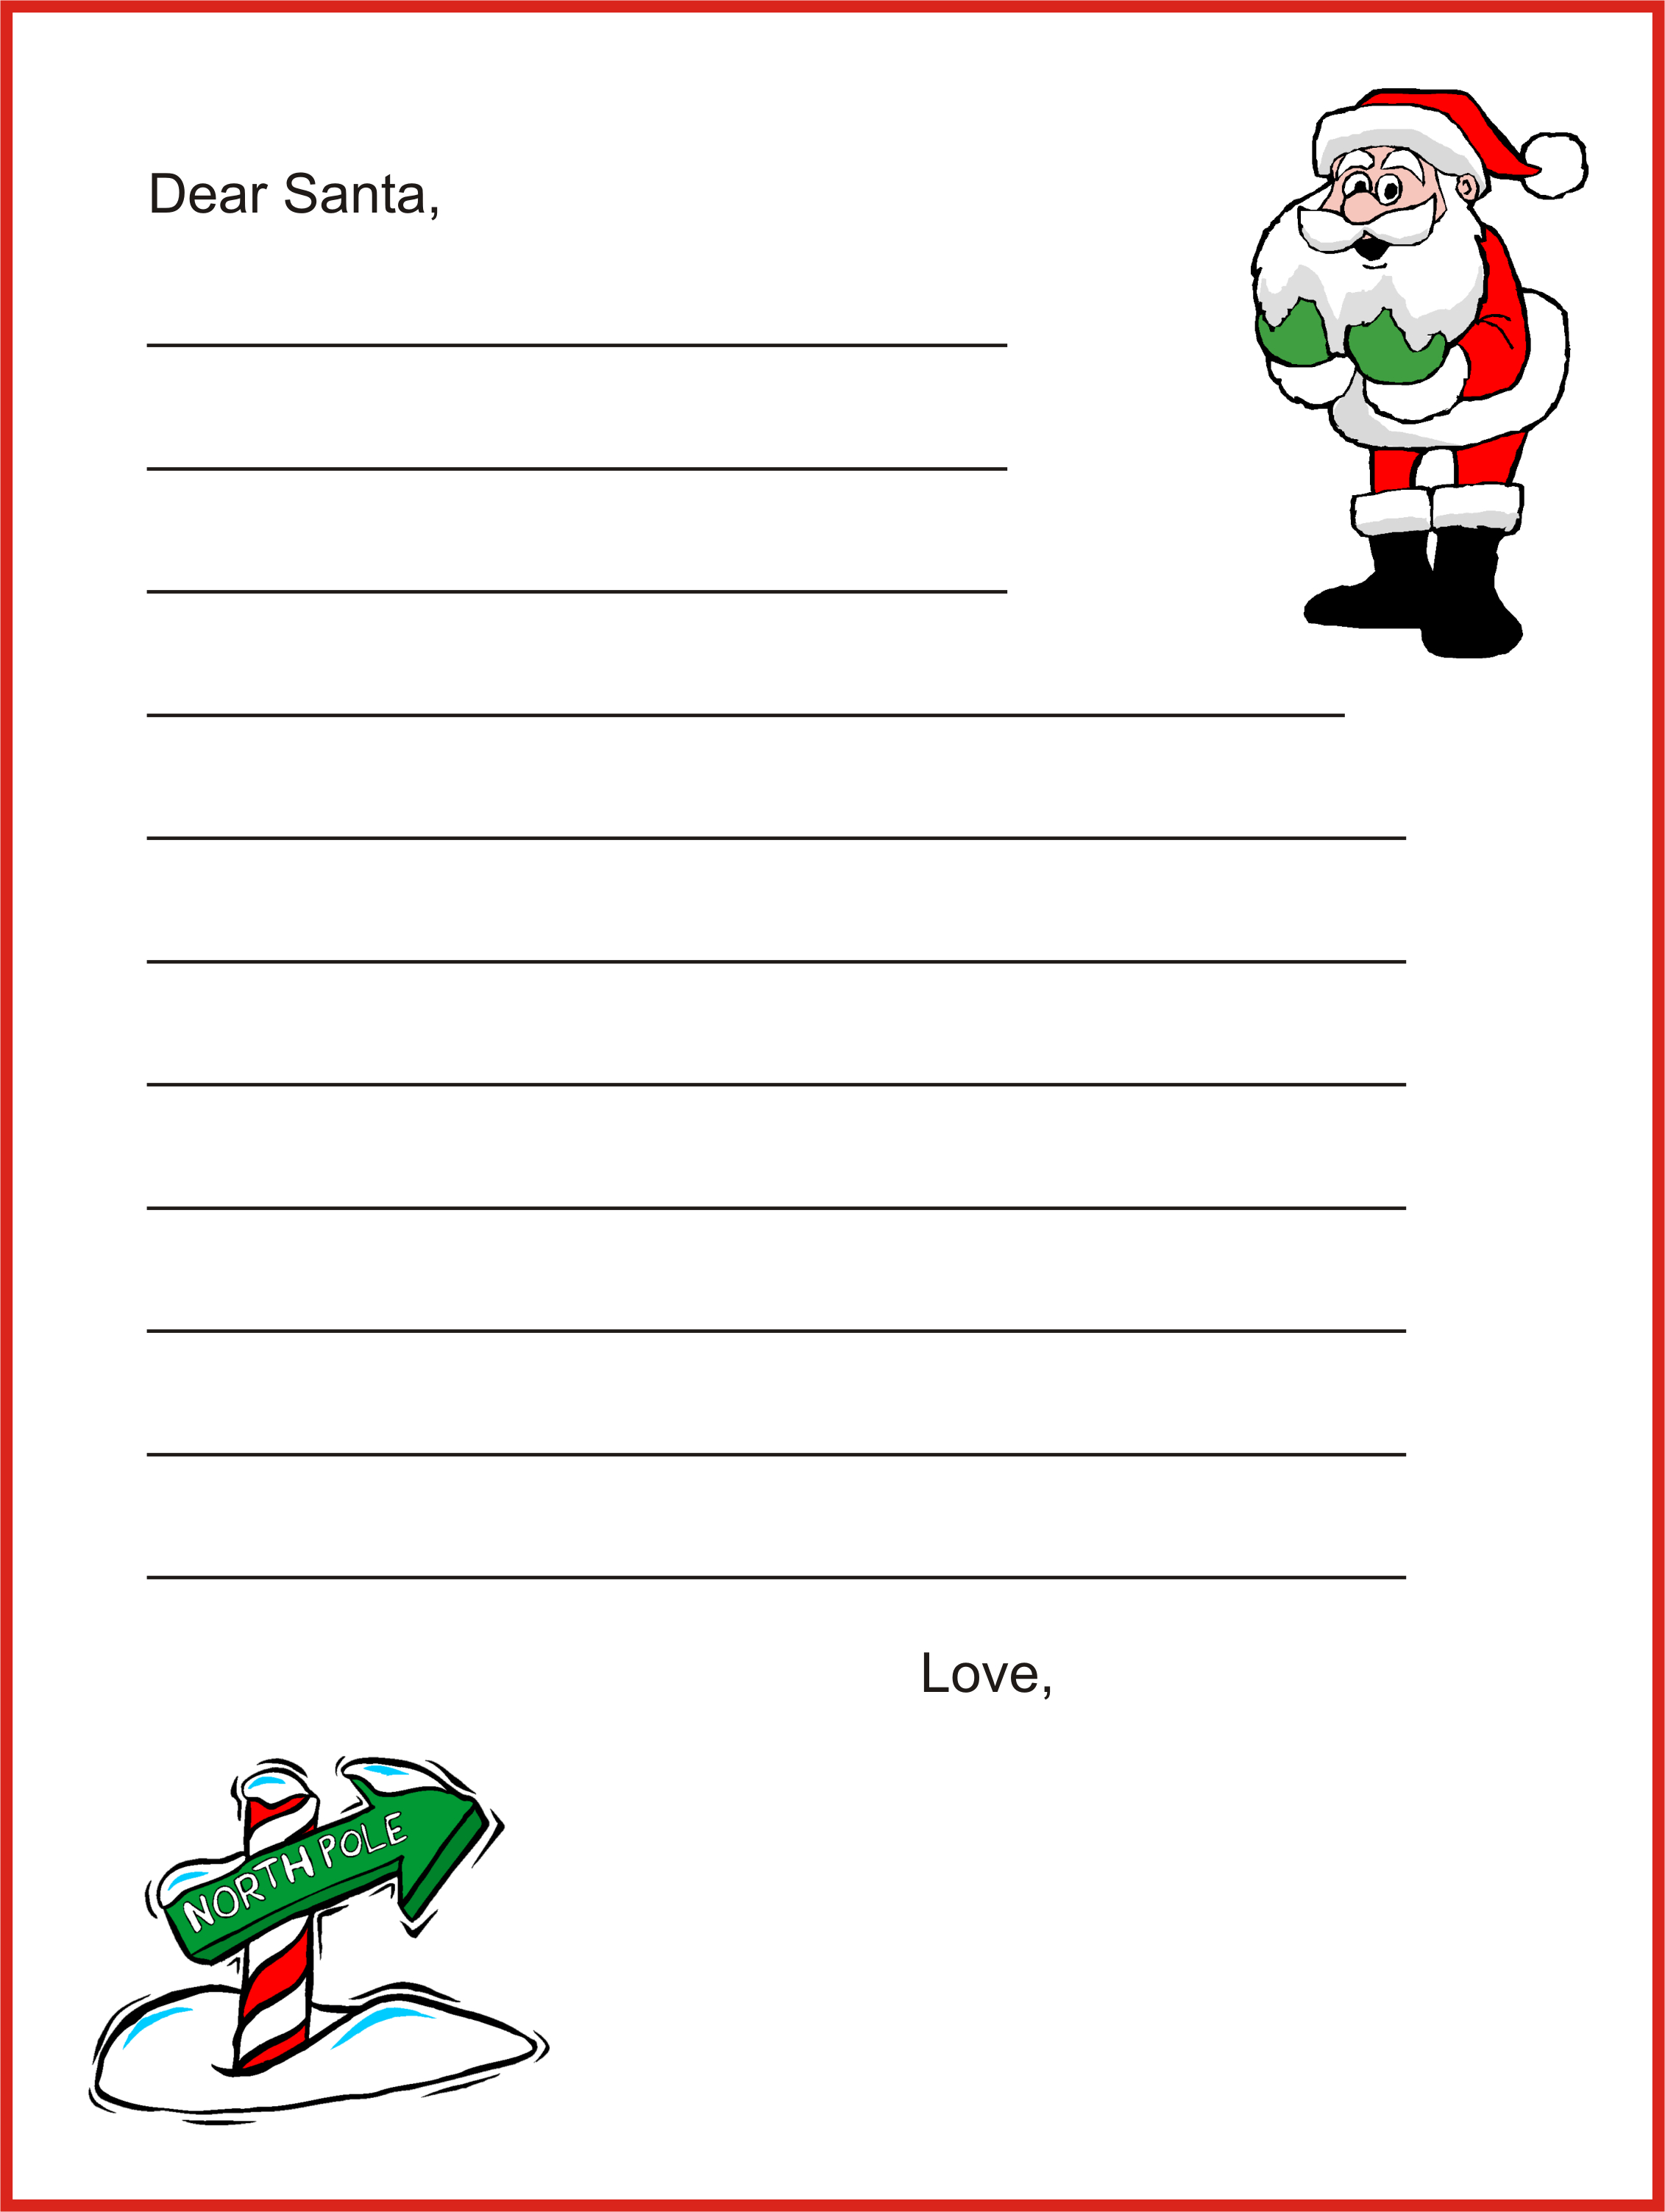 letters to santa lesson plans a lesson plan write a letter to santa clause 22075 | dear santa letter stationery